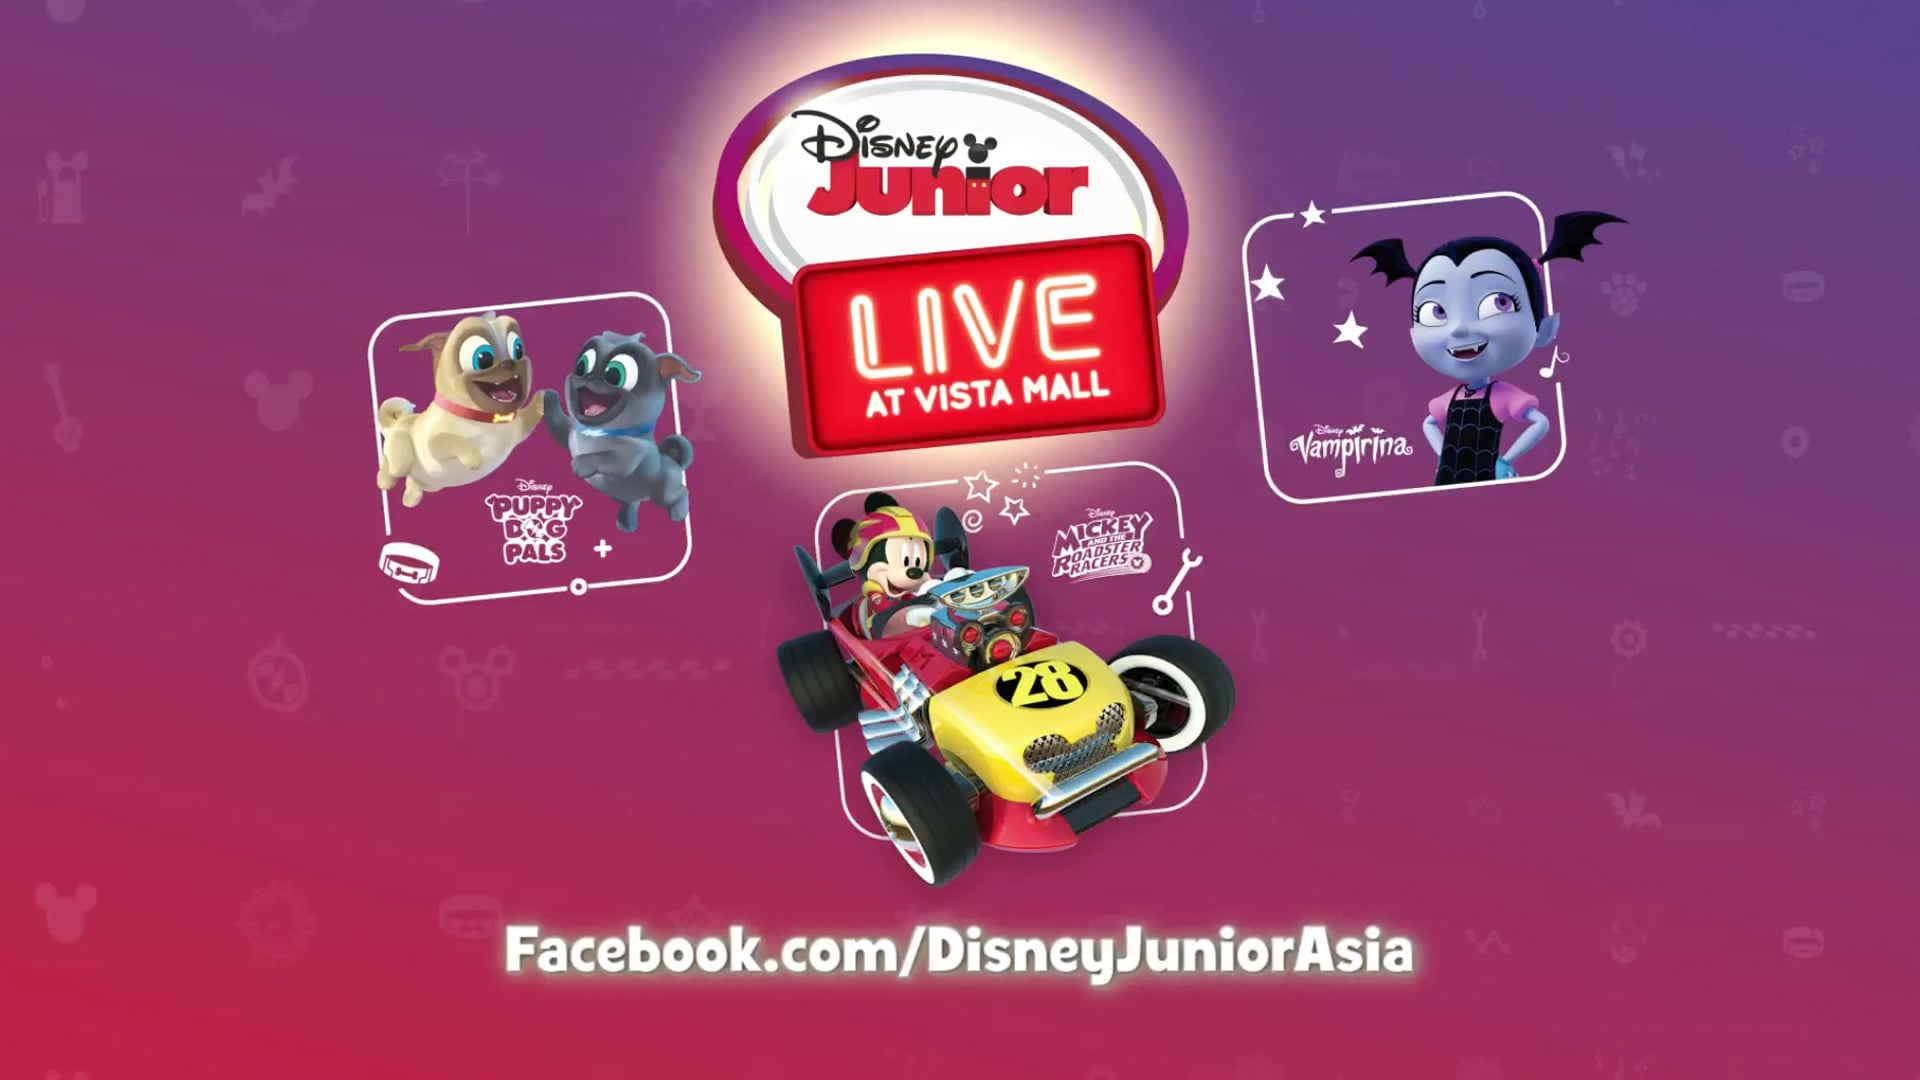 Disney Junior: Live At Vista Mall